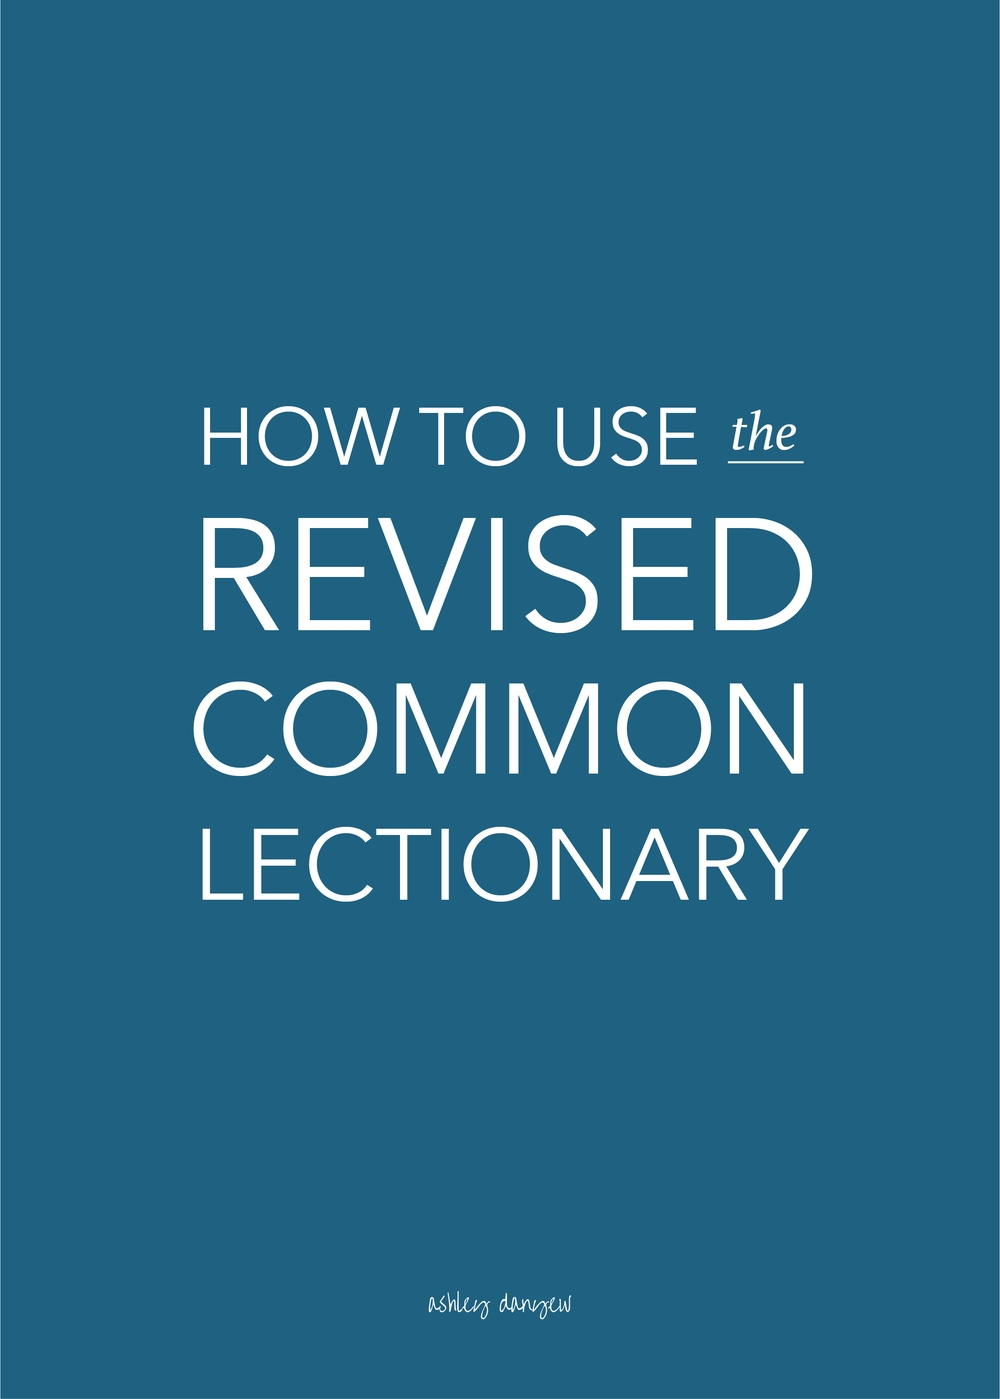 How To Use The Revised Common Lectionary | Ashley Danyew  Lectionary For United Methodist Church